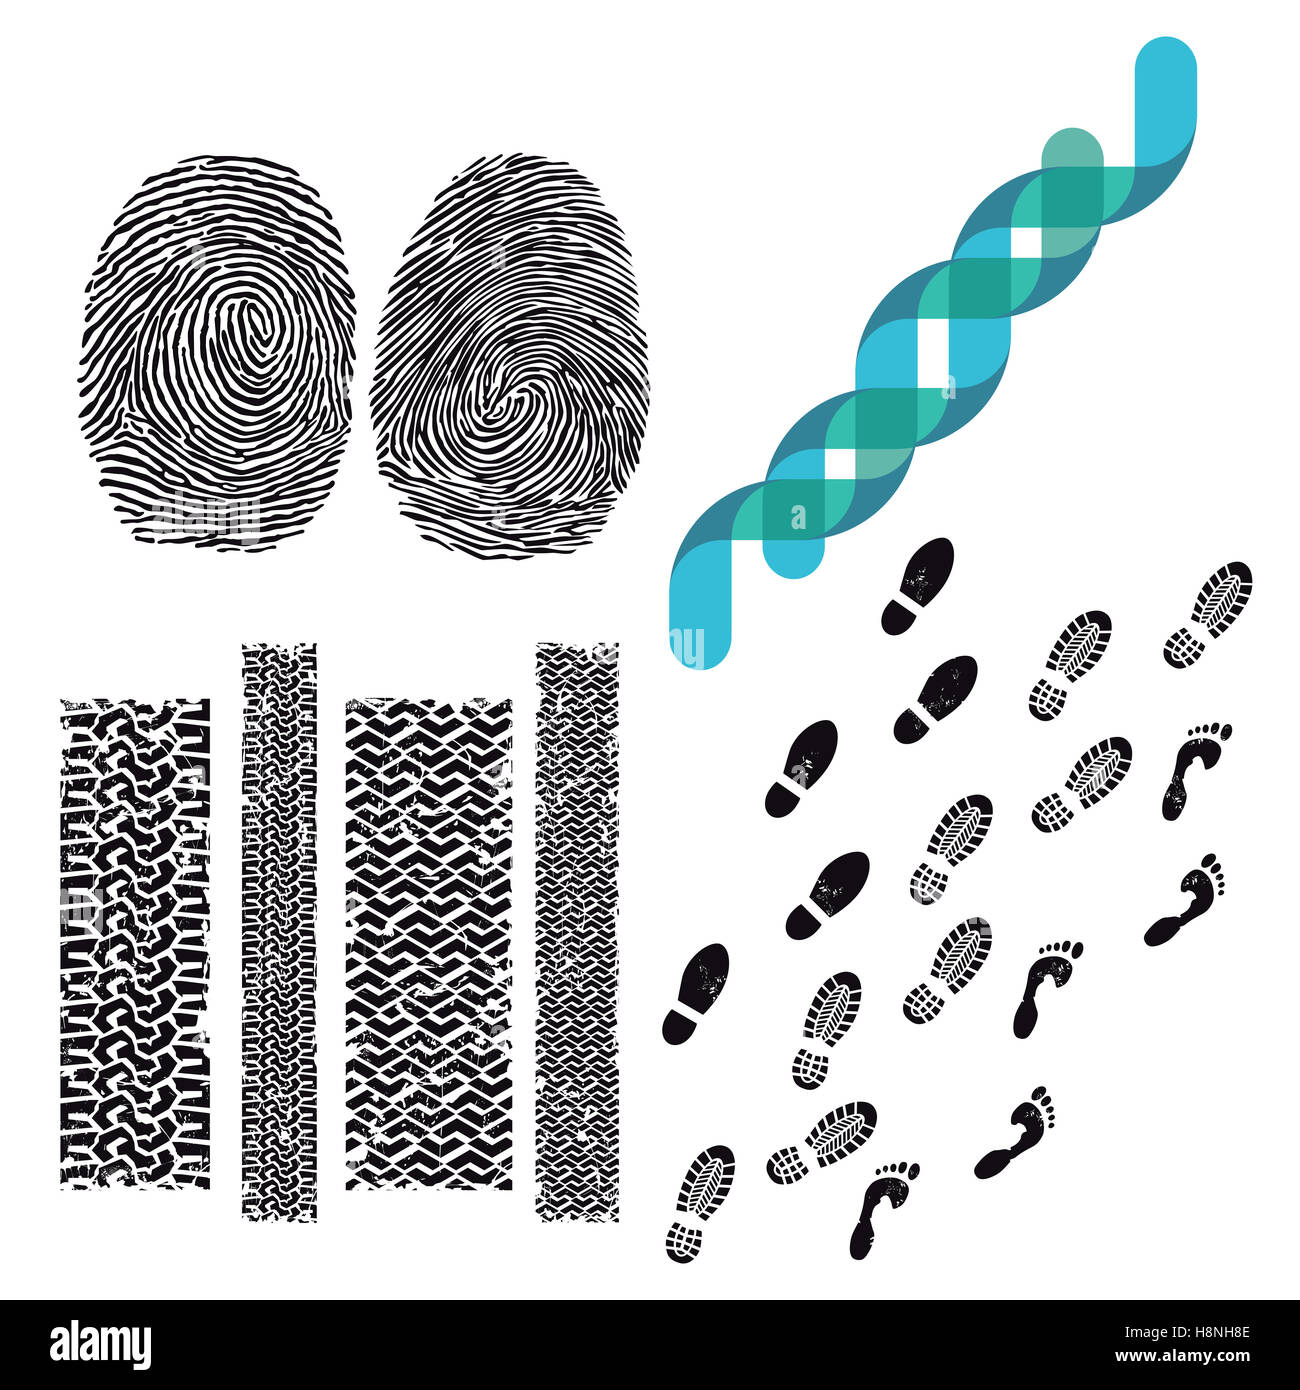 Keeping track of tracks, genetic, fingerprint, footprint, - Stock Image